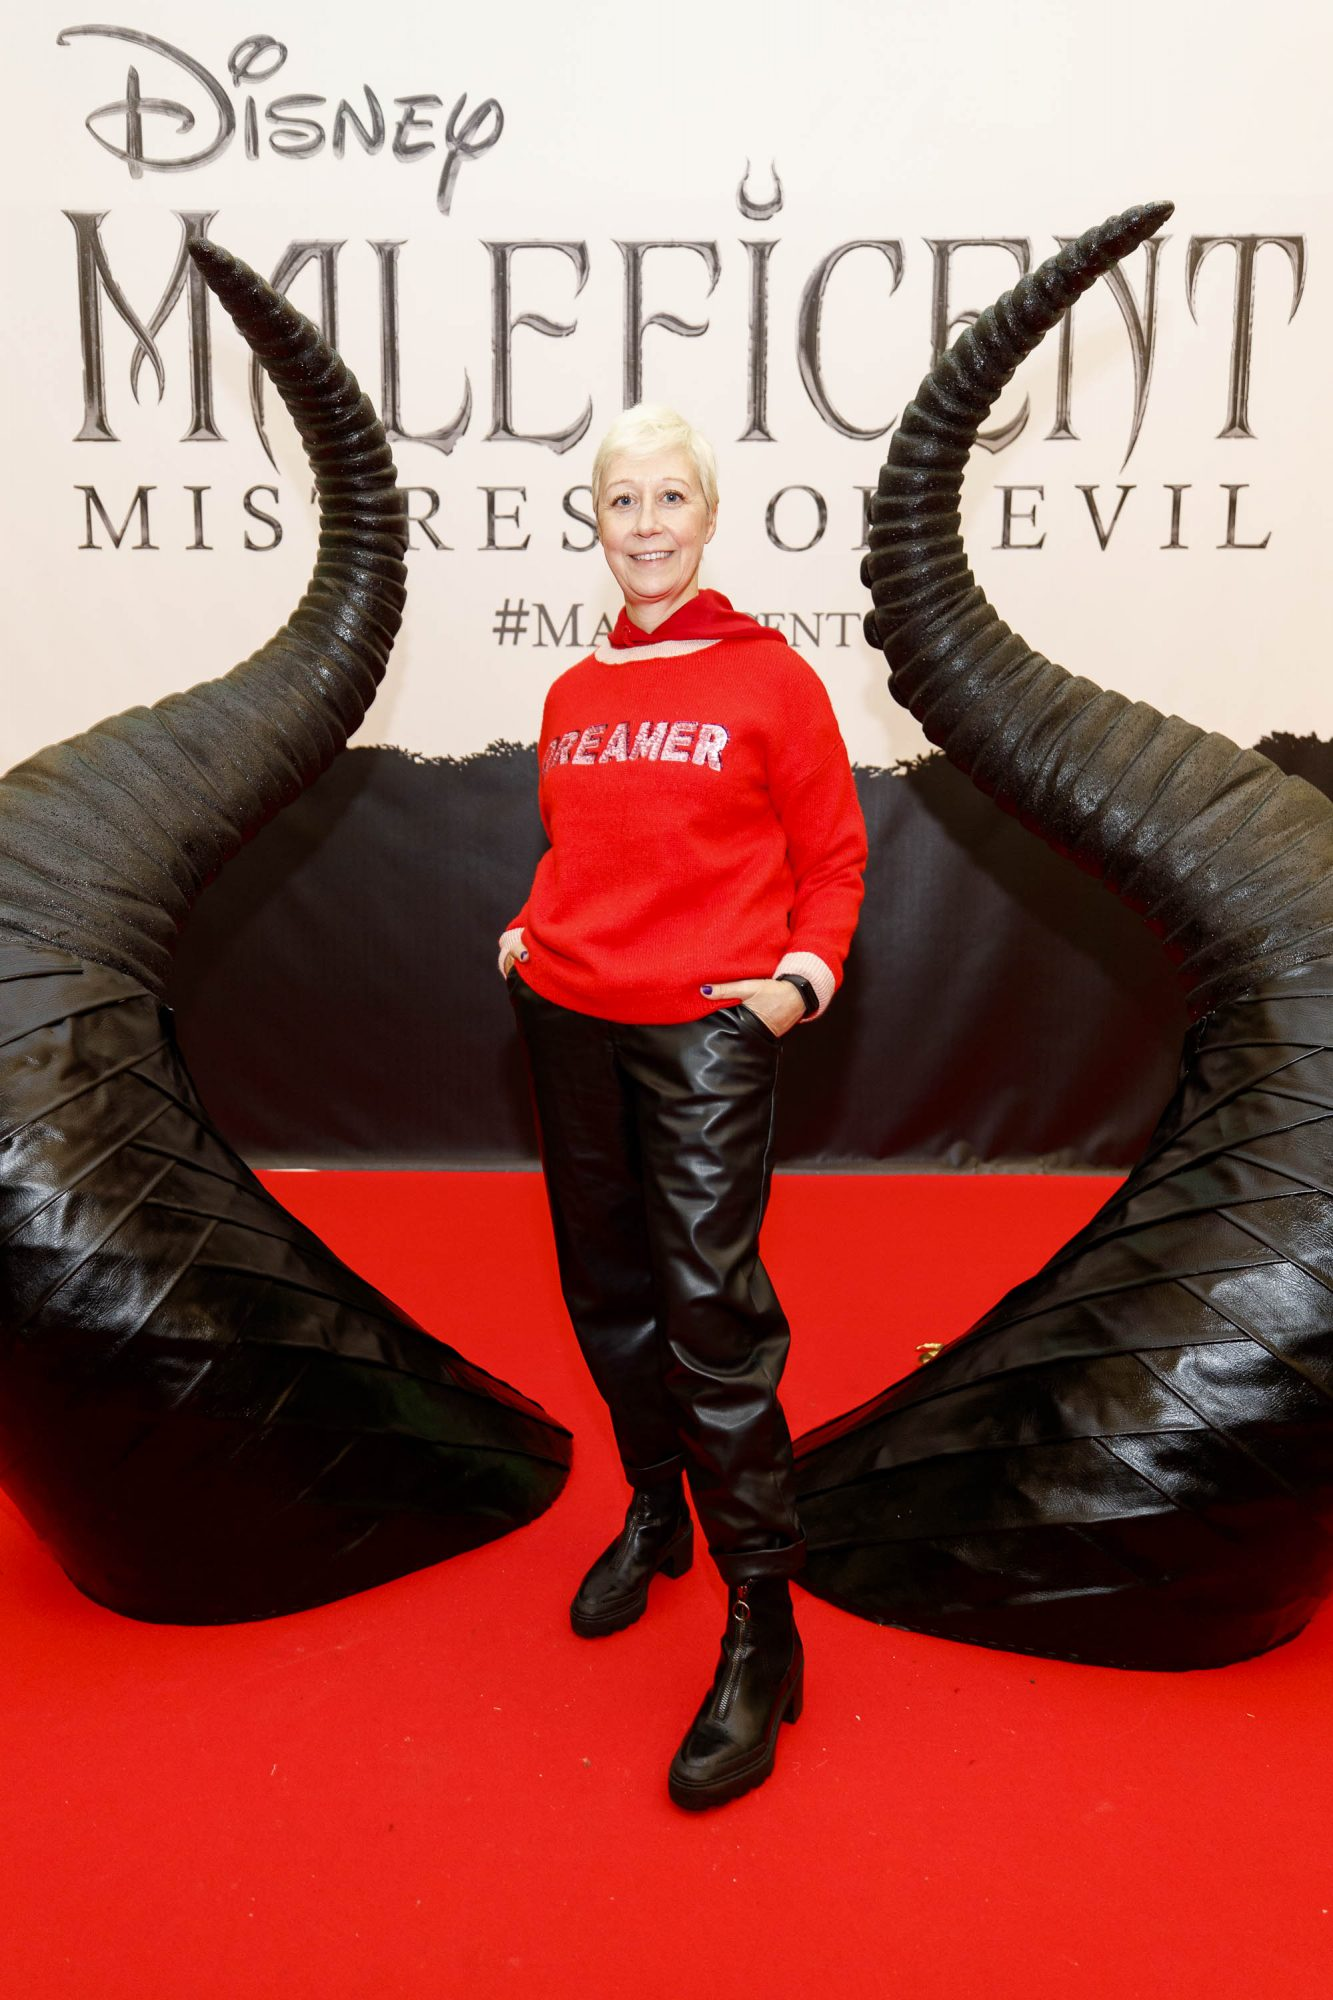 Family Screening Of Maleficent Mistress Of Evil In The